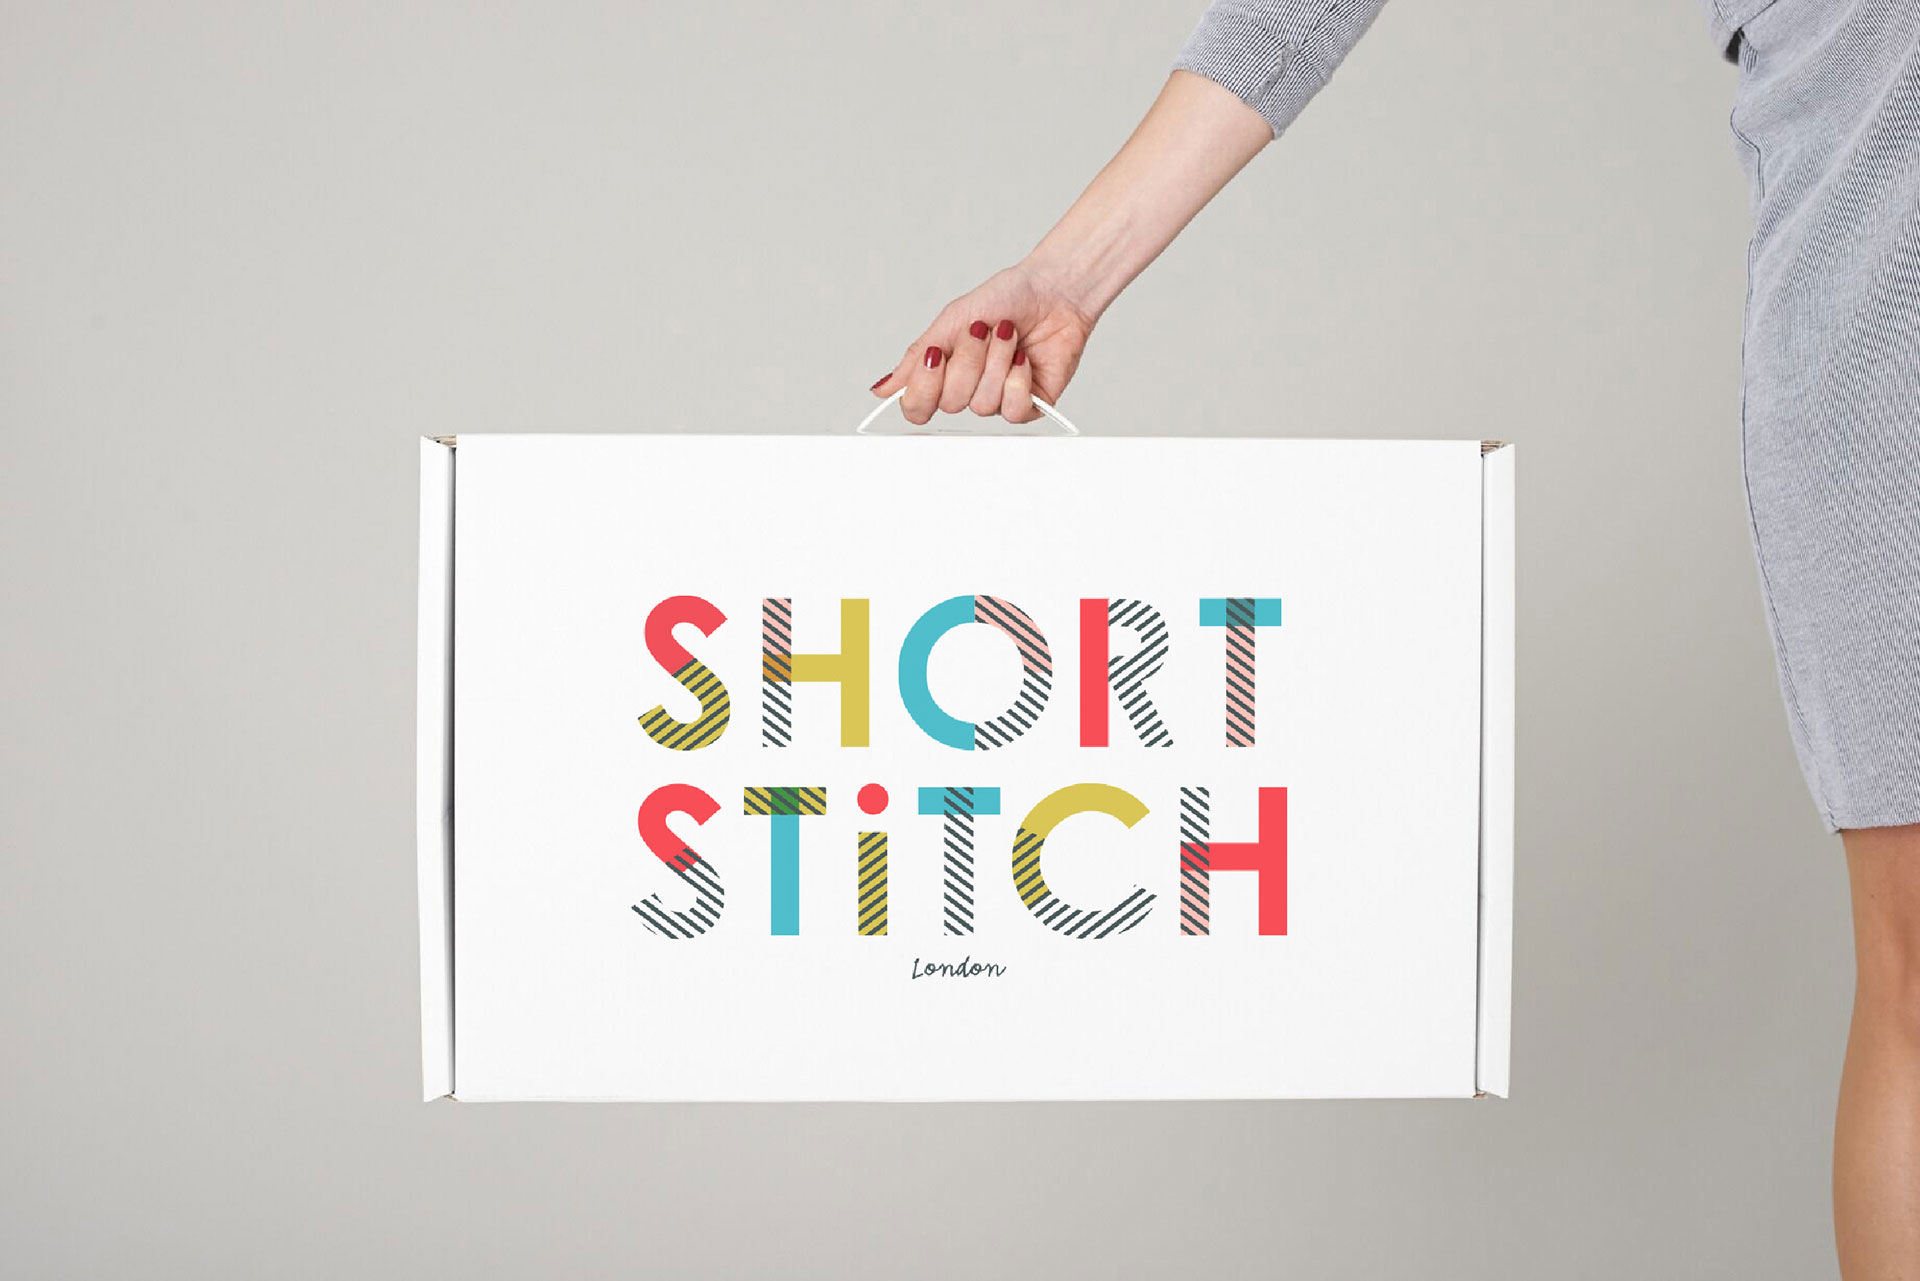 junction-single-project_shortstitch_aw01-02